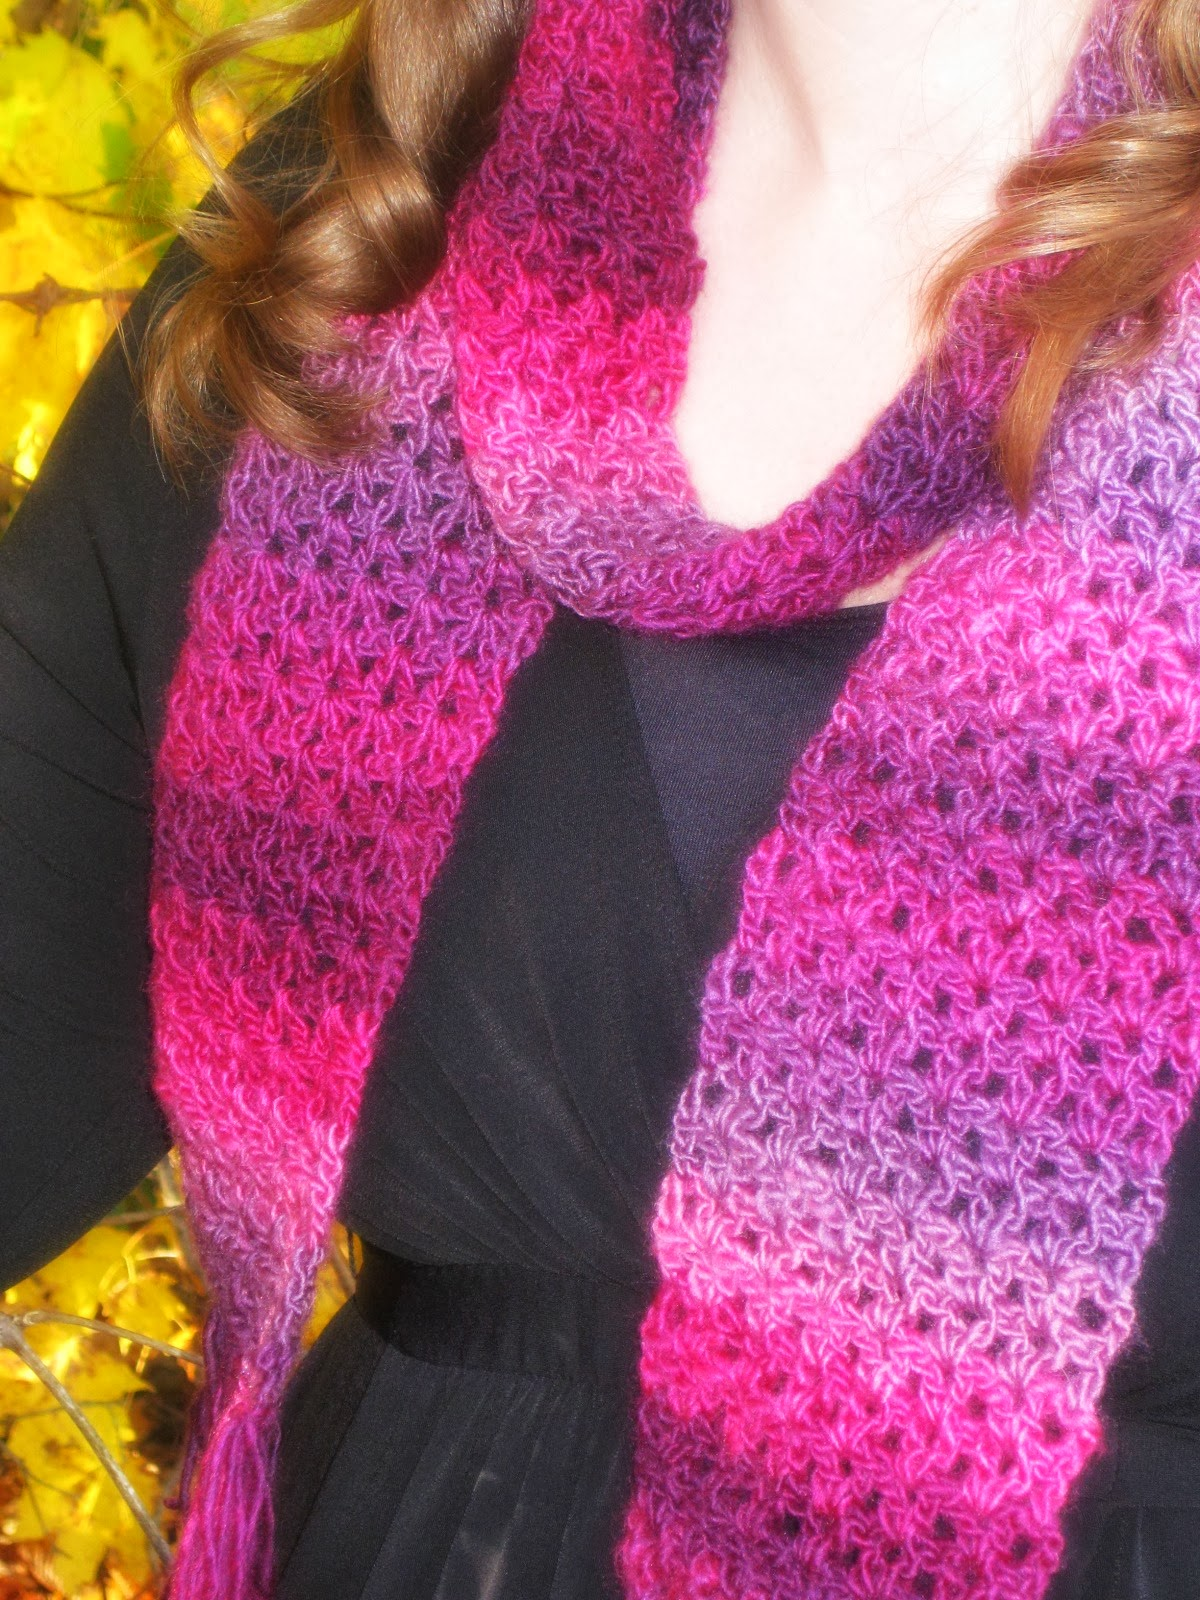 Free Crochet Patterns Using Red Heart Unforgettable Yarn : Unforgettable One-Skein Scarf - Free Crochet Pattern ...